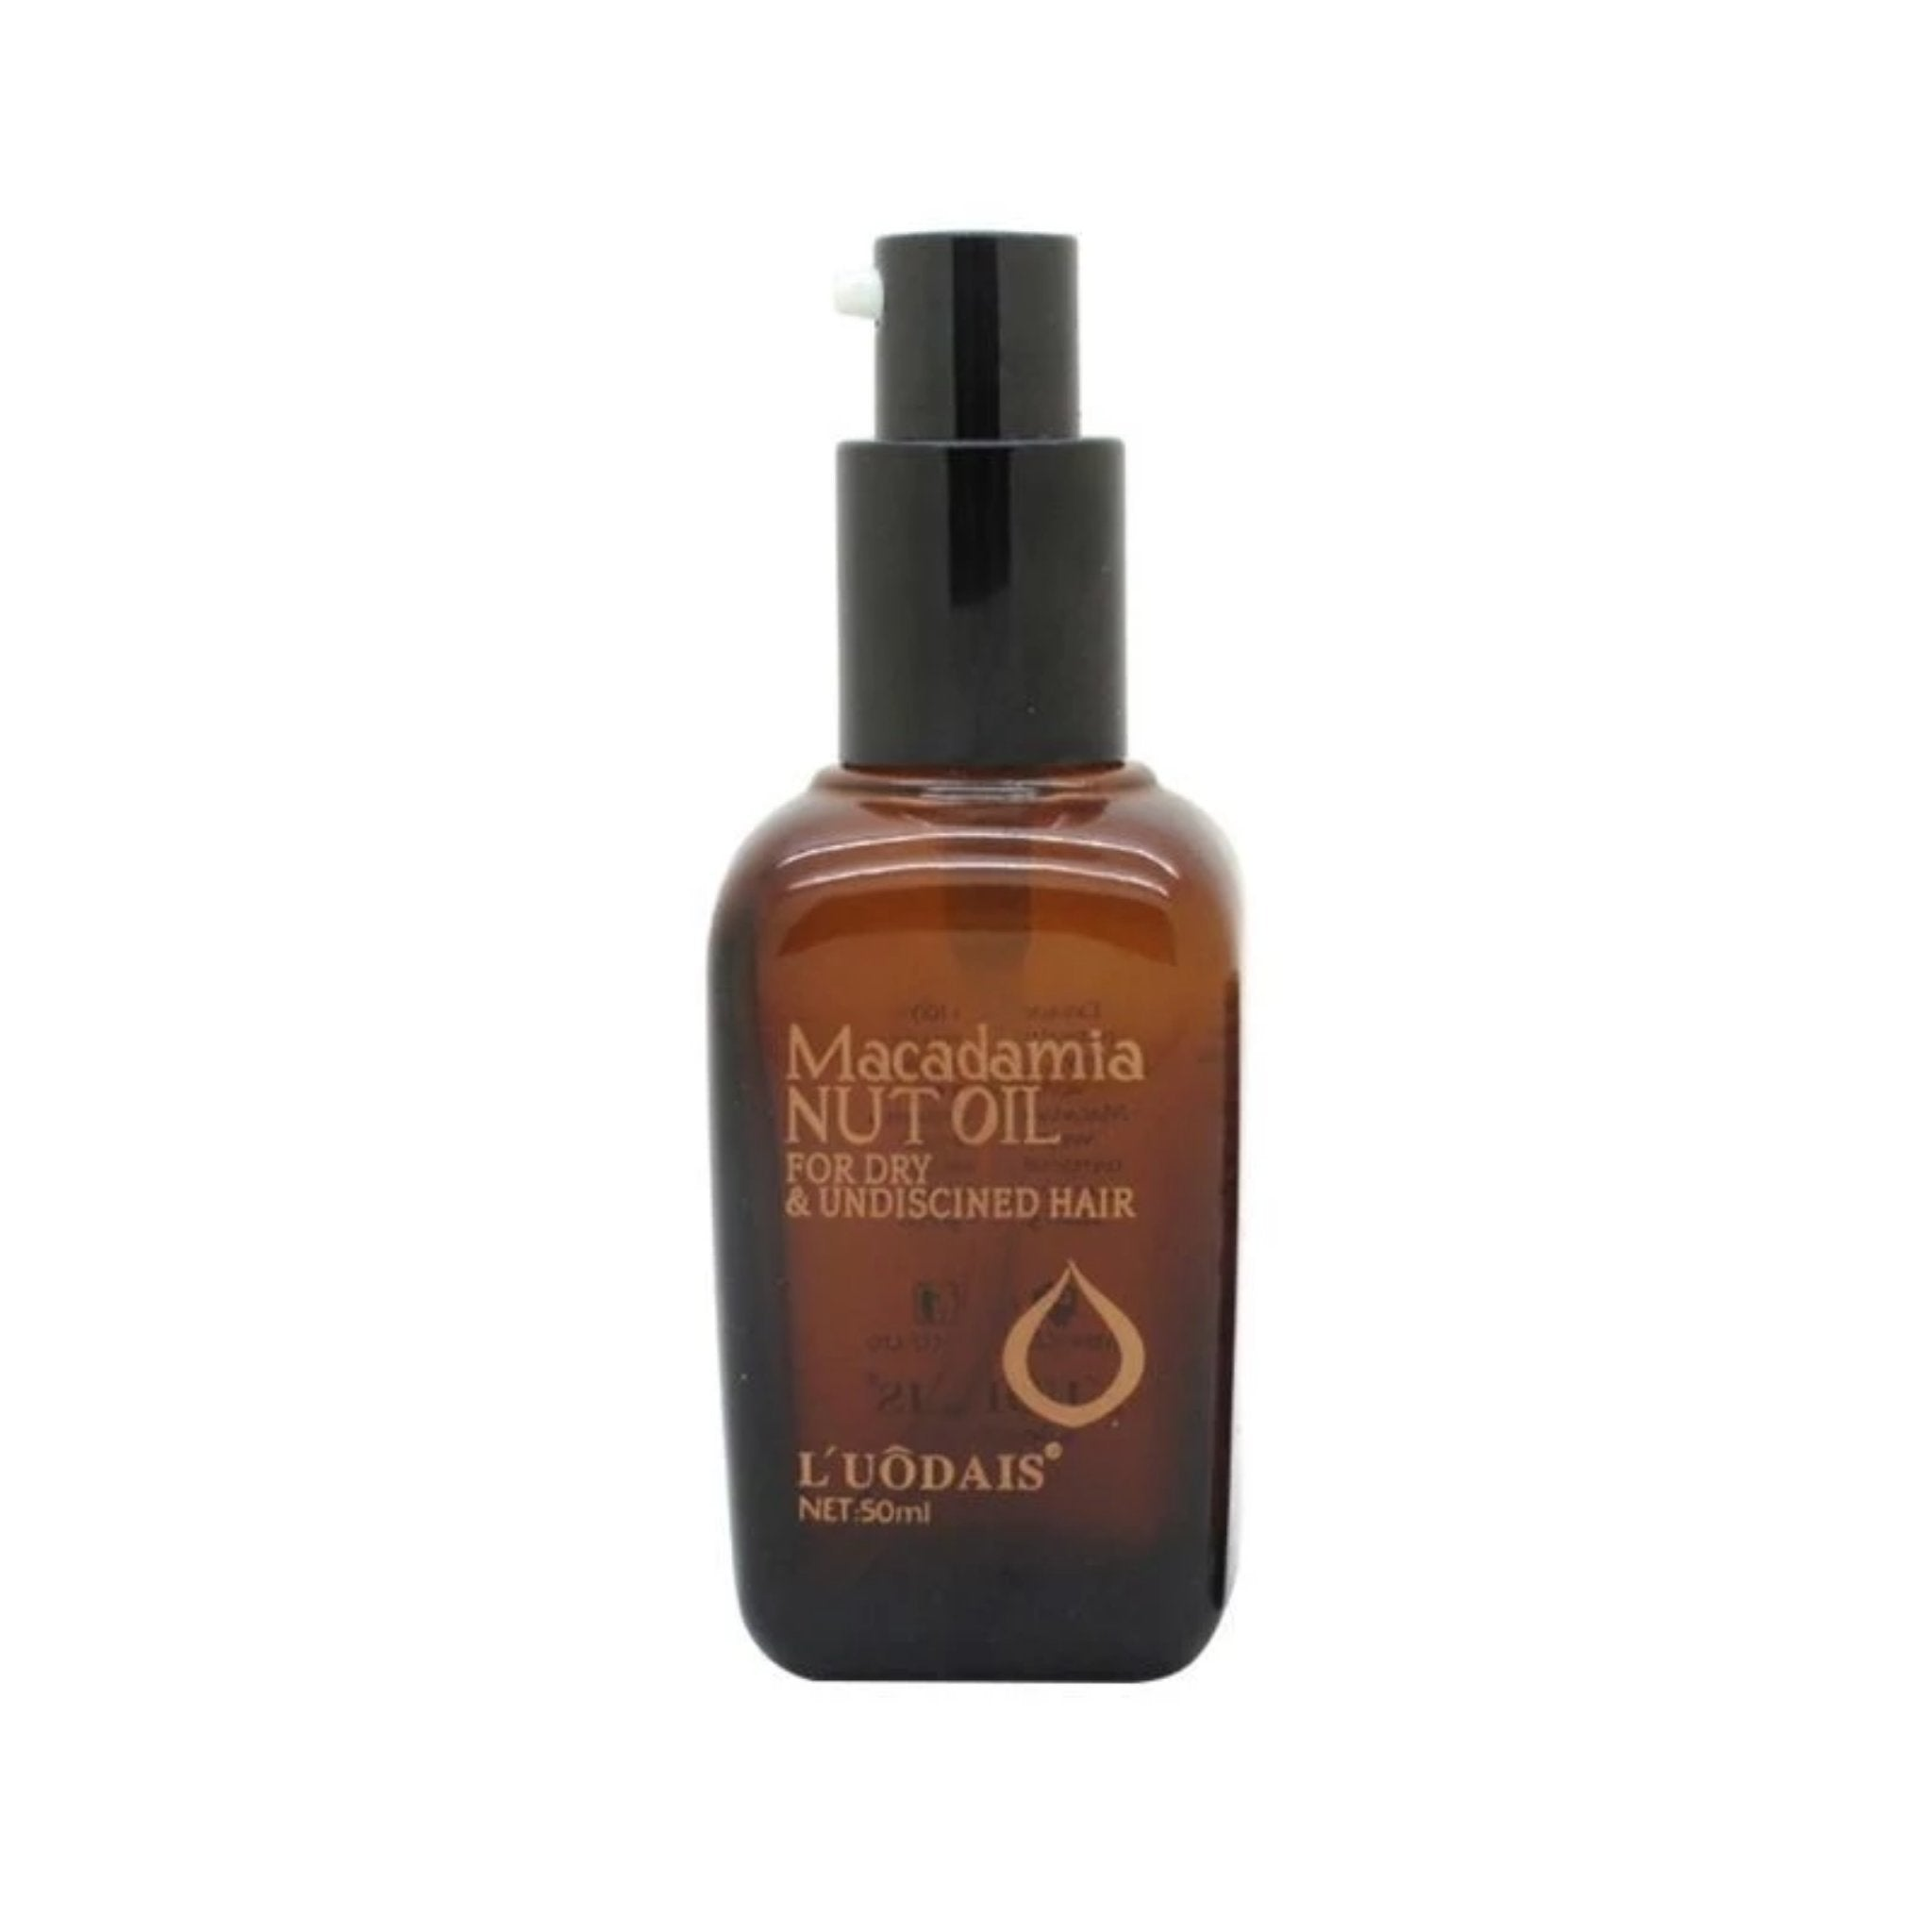 Nut Oil For Dry and Damaged Hair